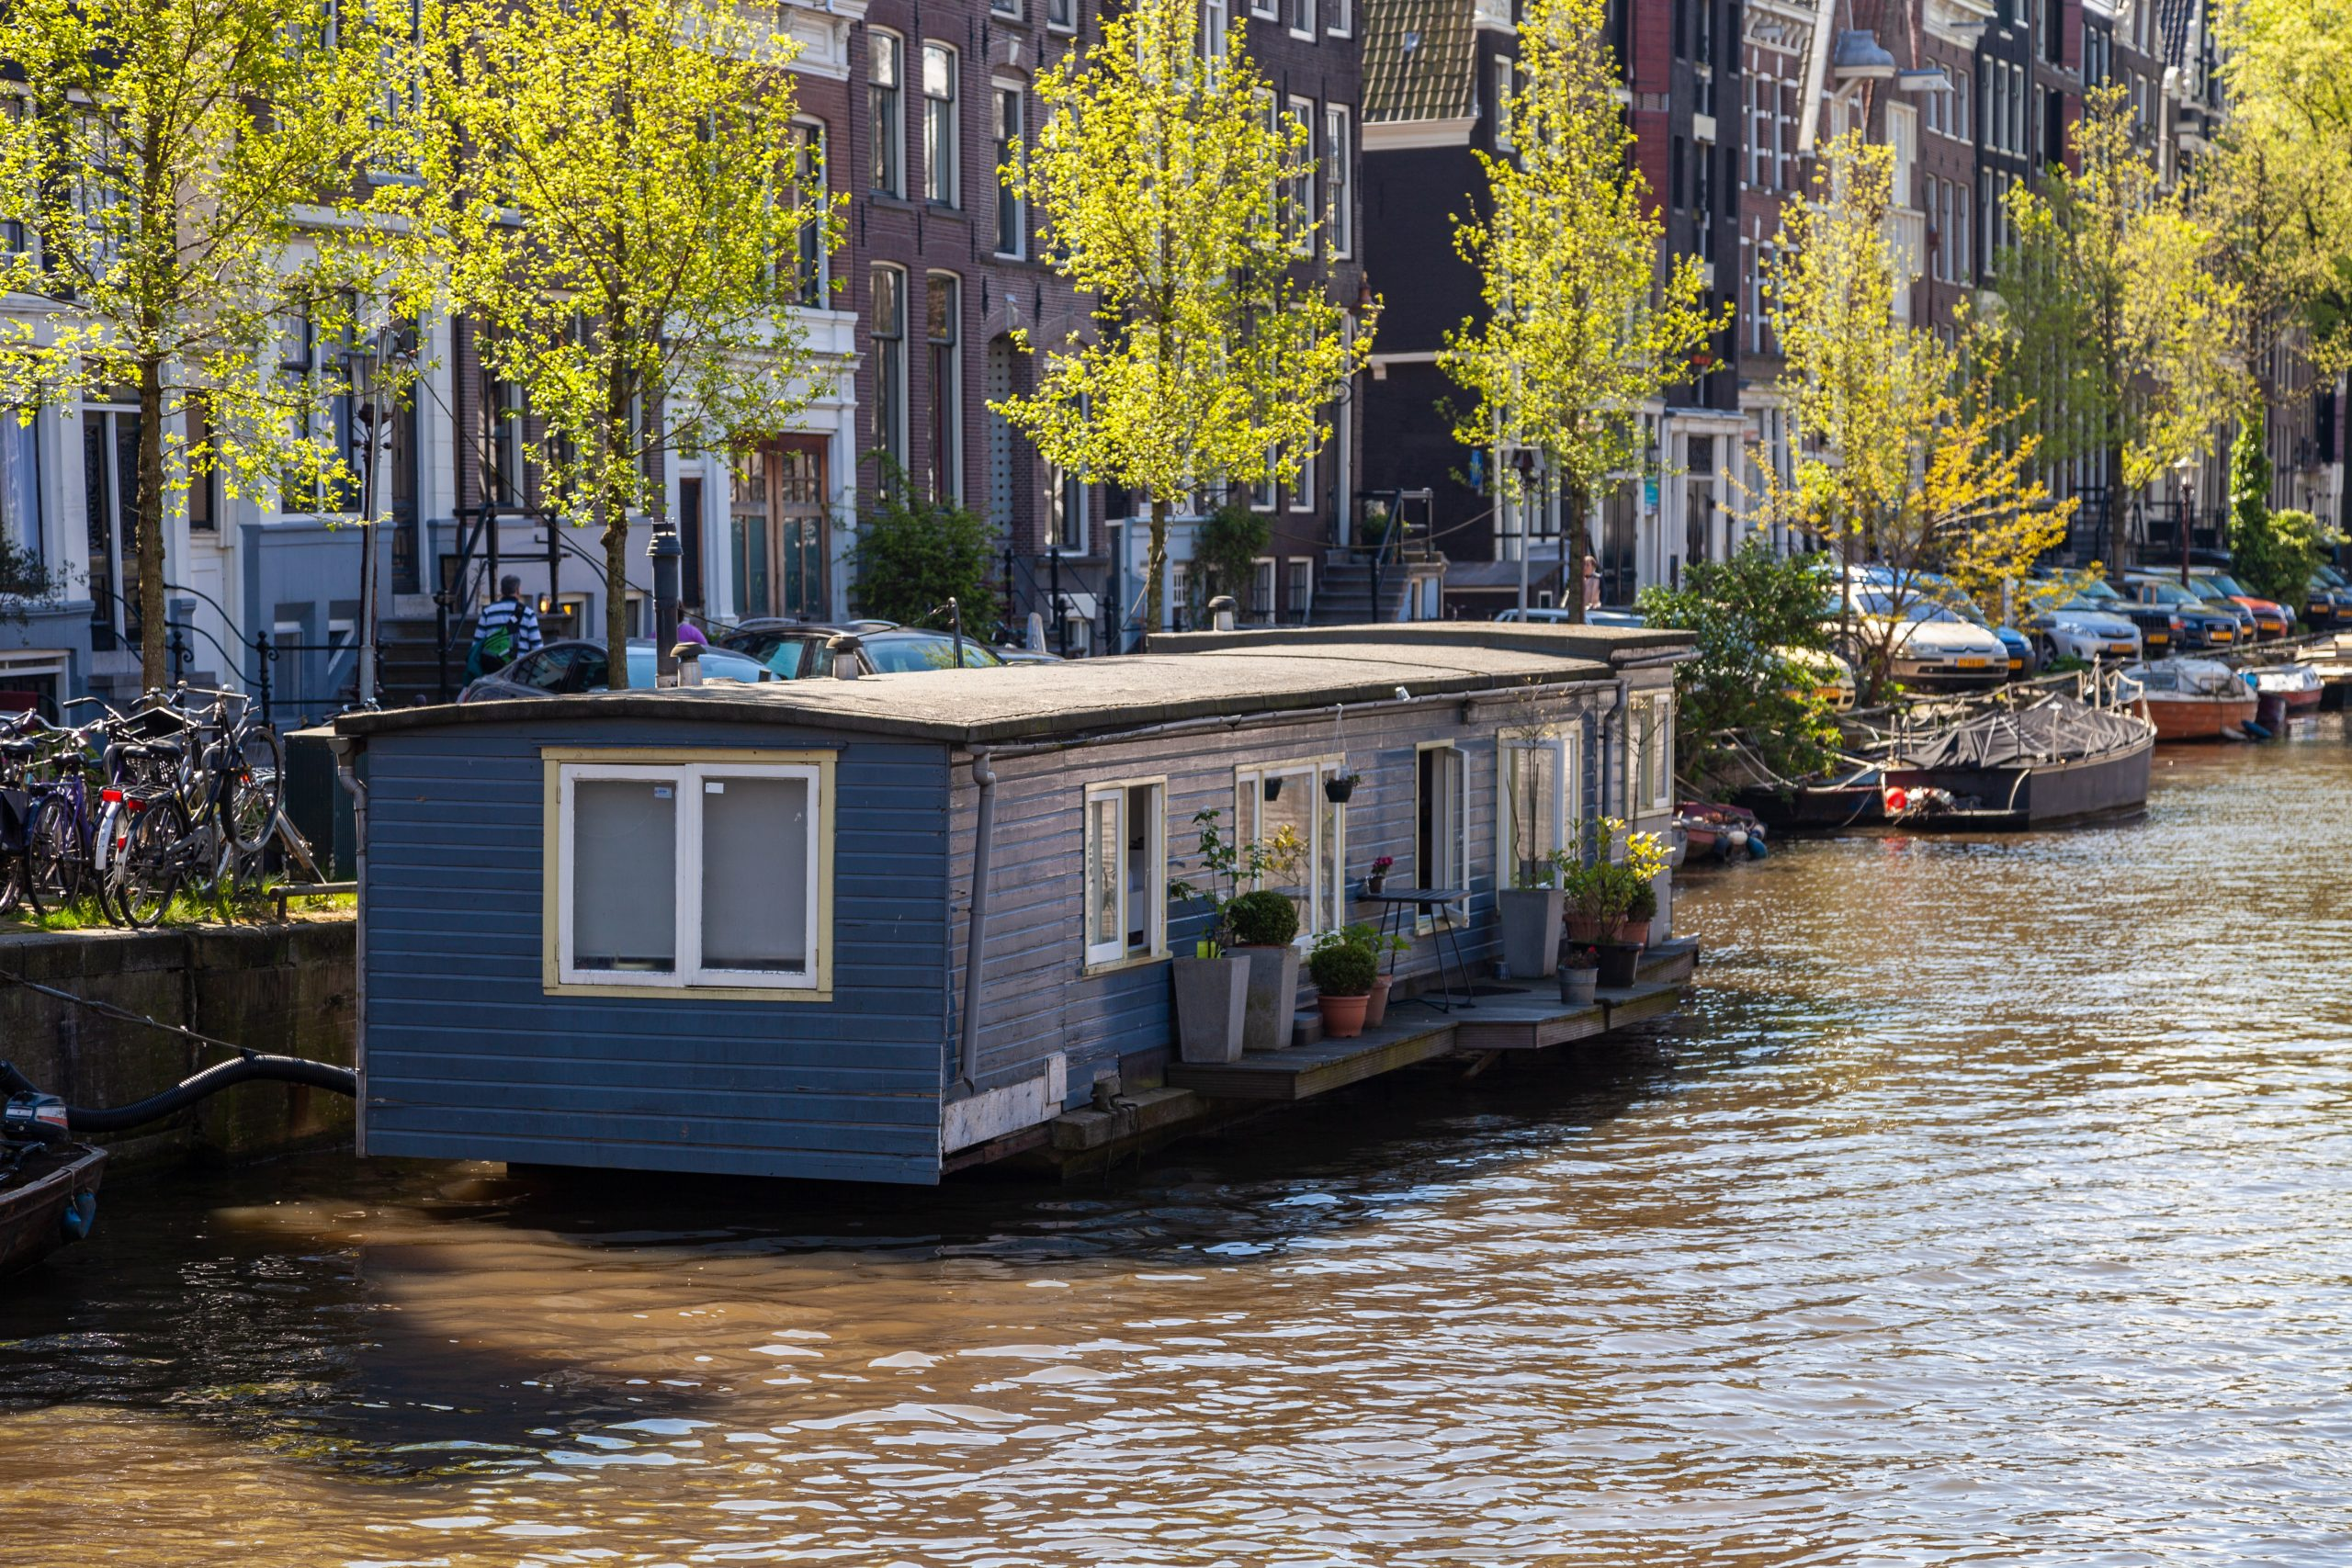 Unique accommodations in the Netherlands